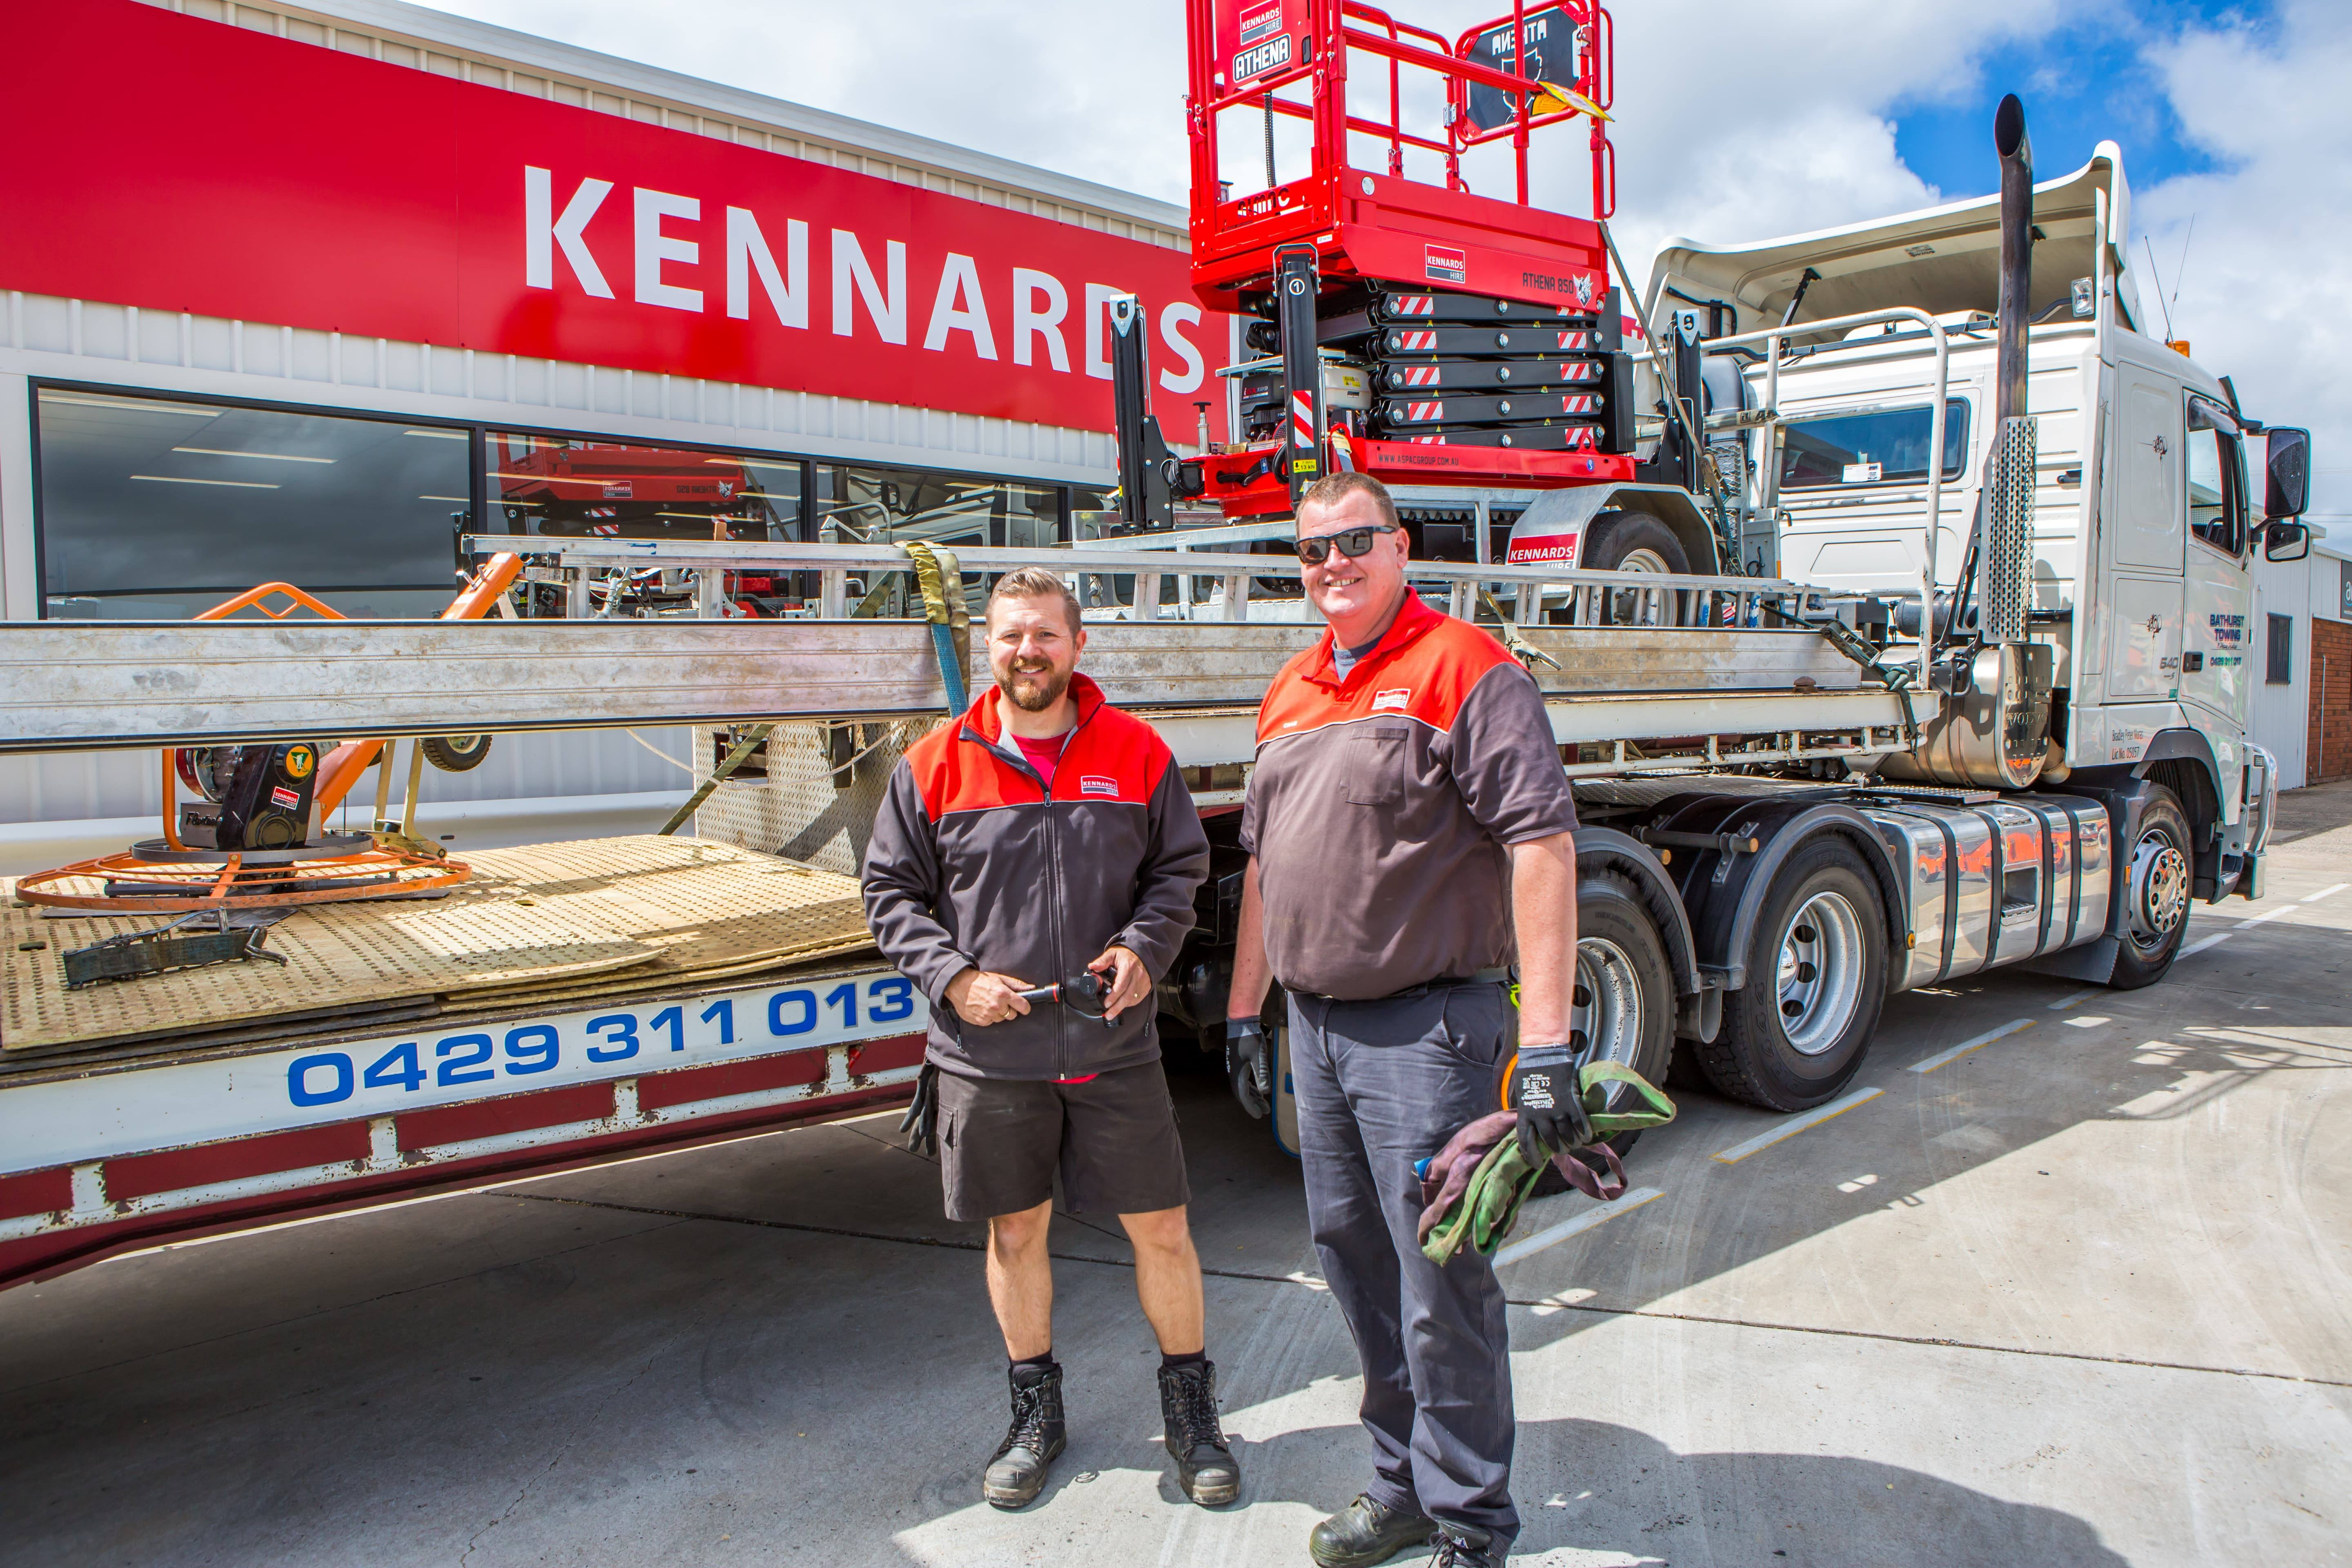 Kennards Hire's got what it takes to help drought-stricken farmers